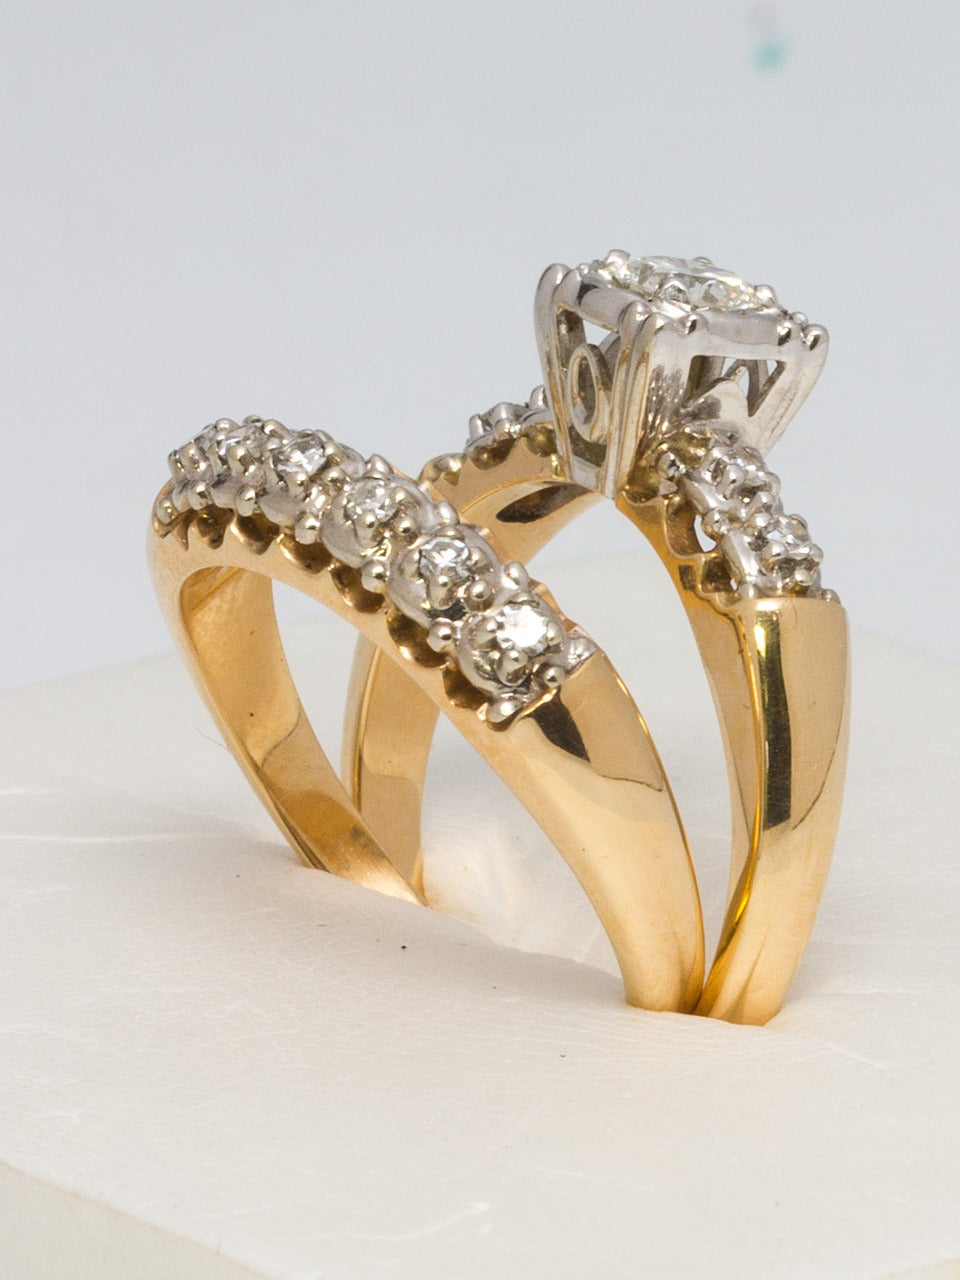 1950s Yellow Gold And Diamond Wedding Ring Set At 1stdibs